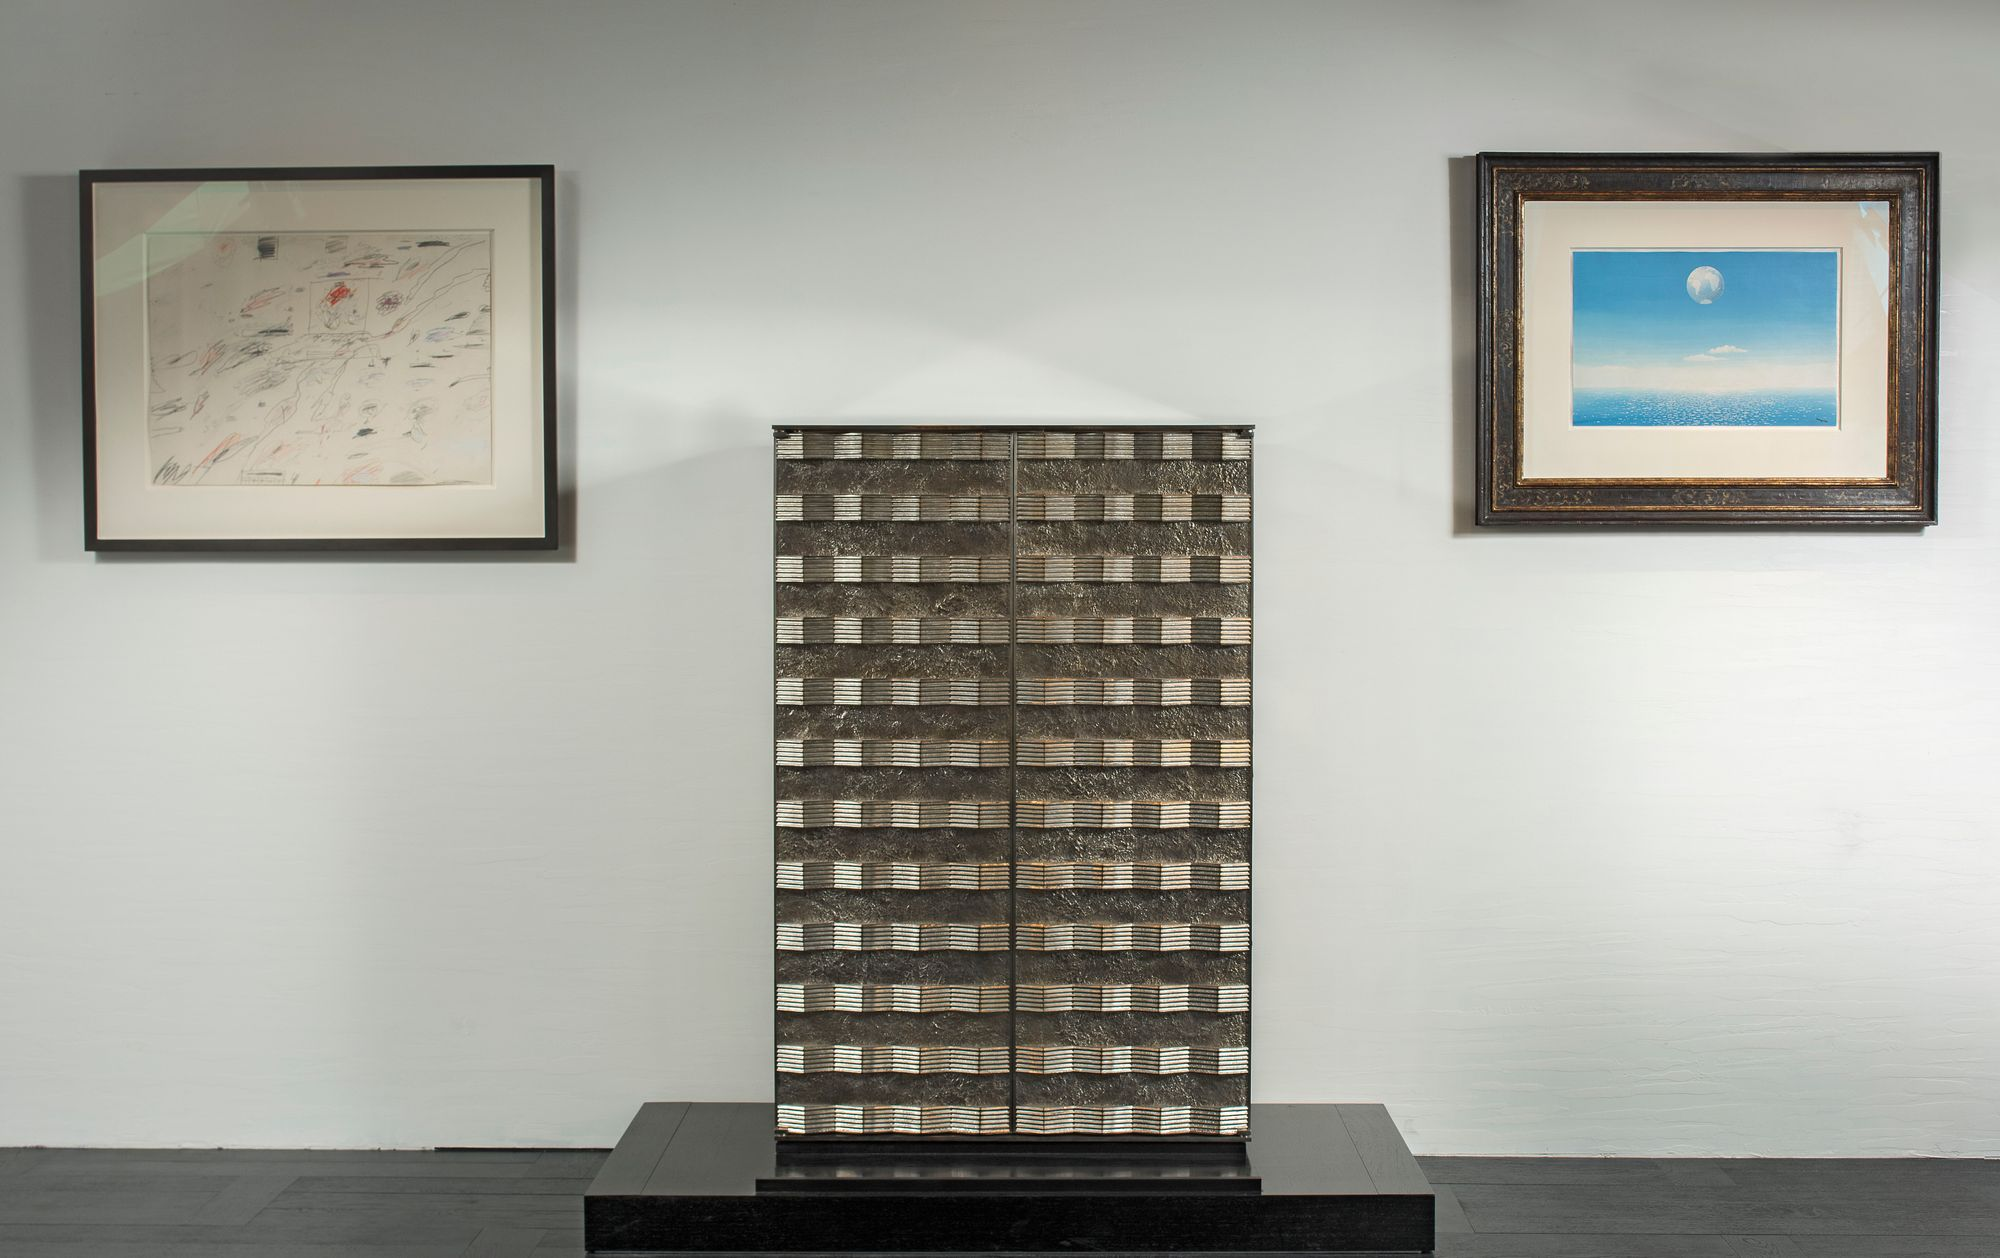 Project Image for Exhibition of Series 1 (bronze boxes)